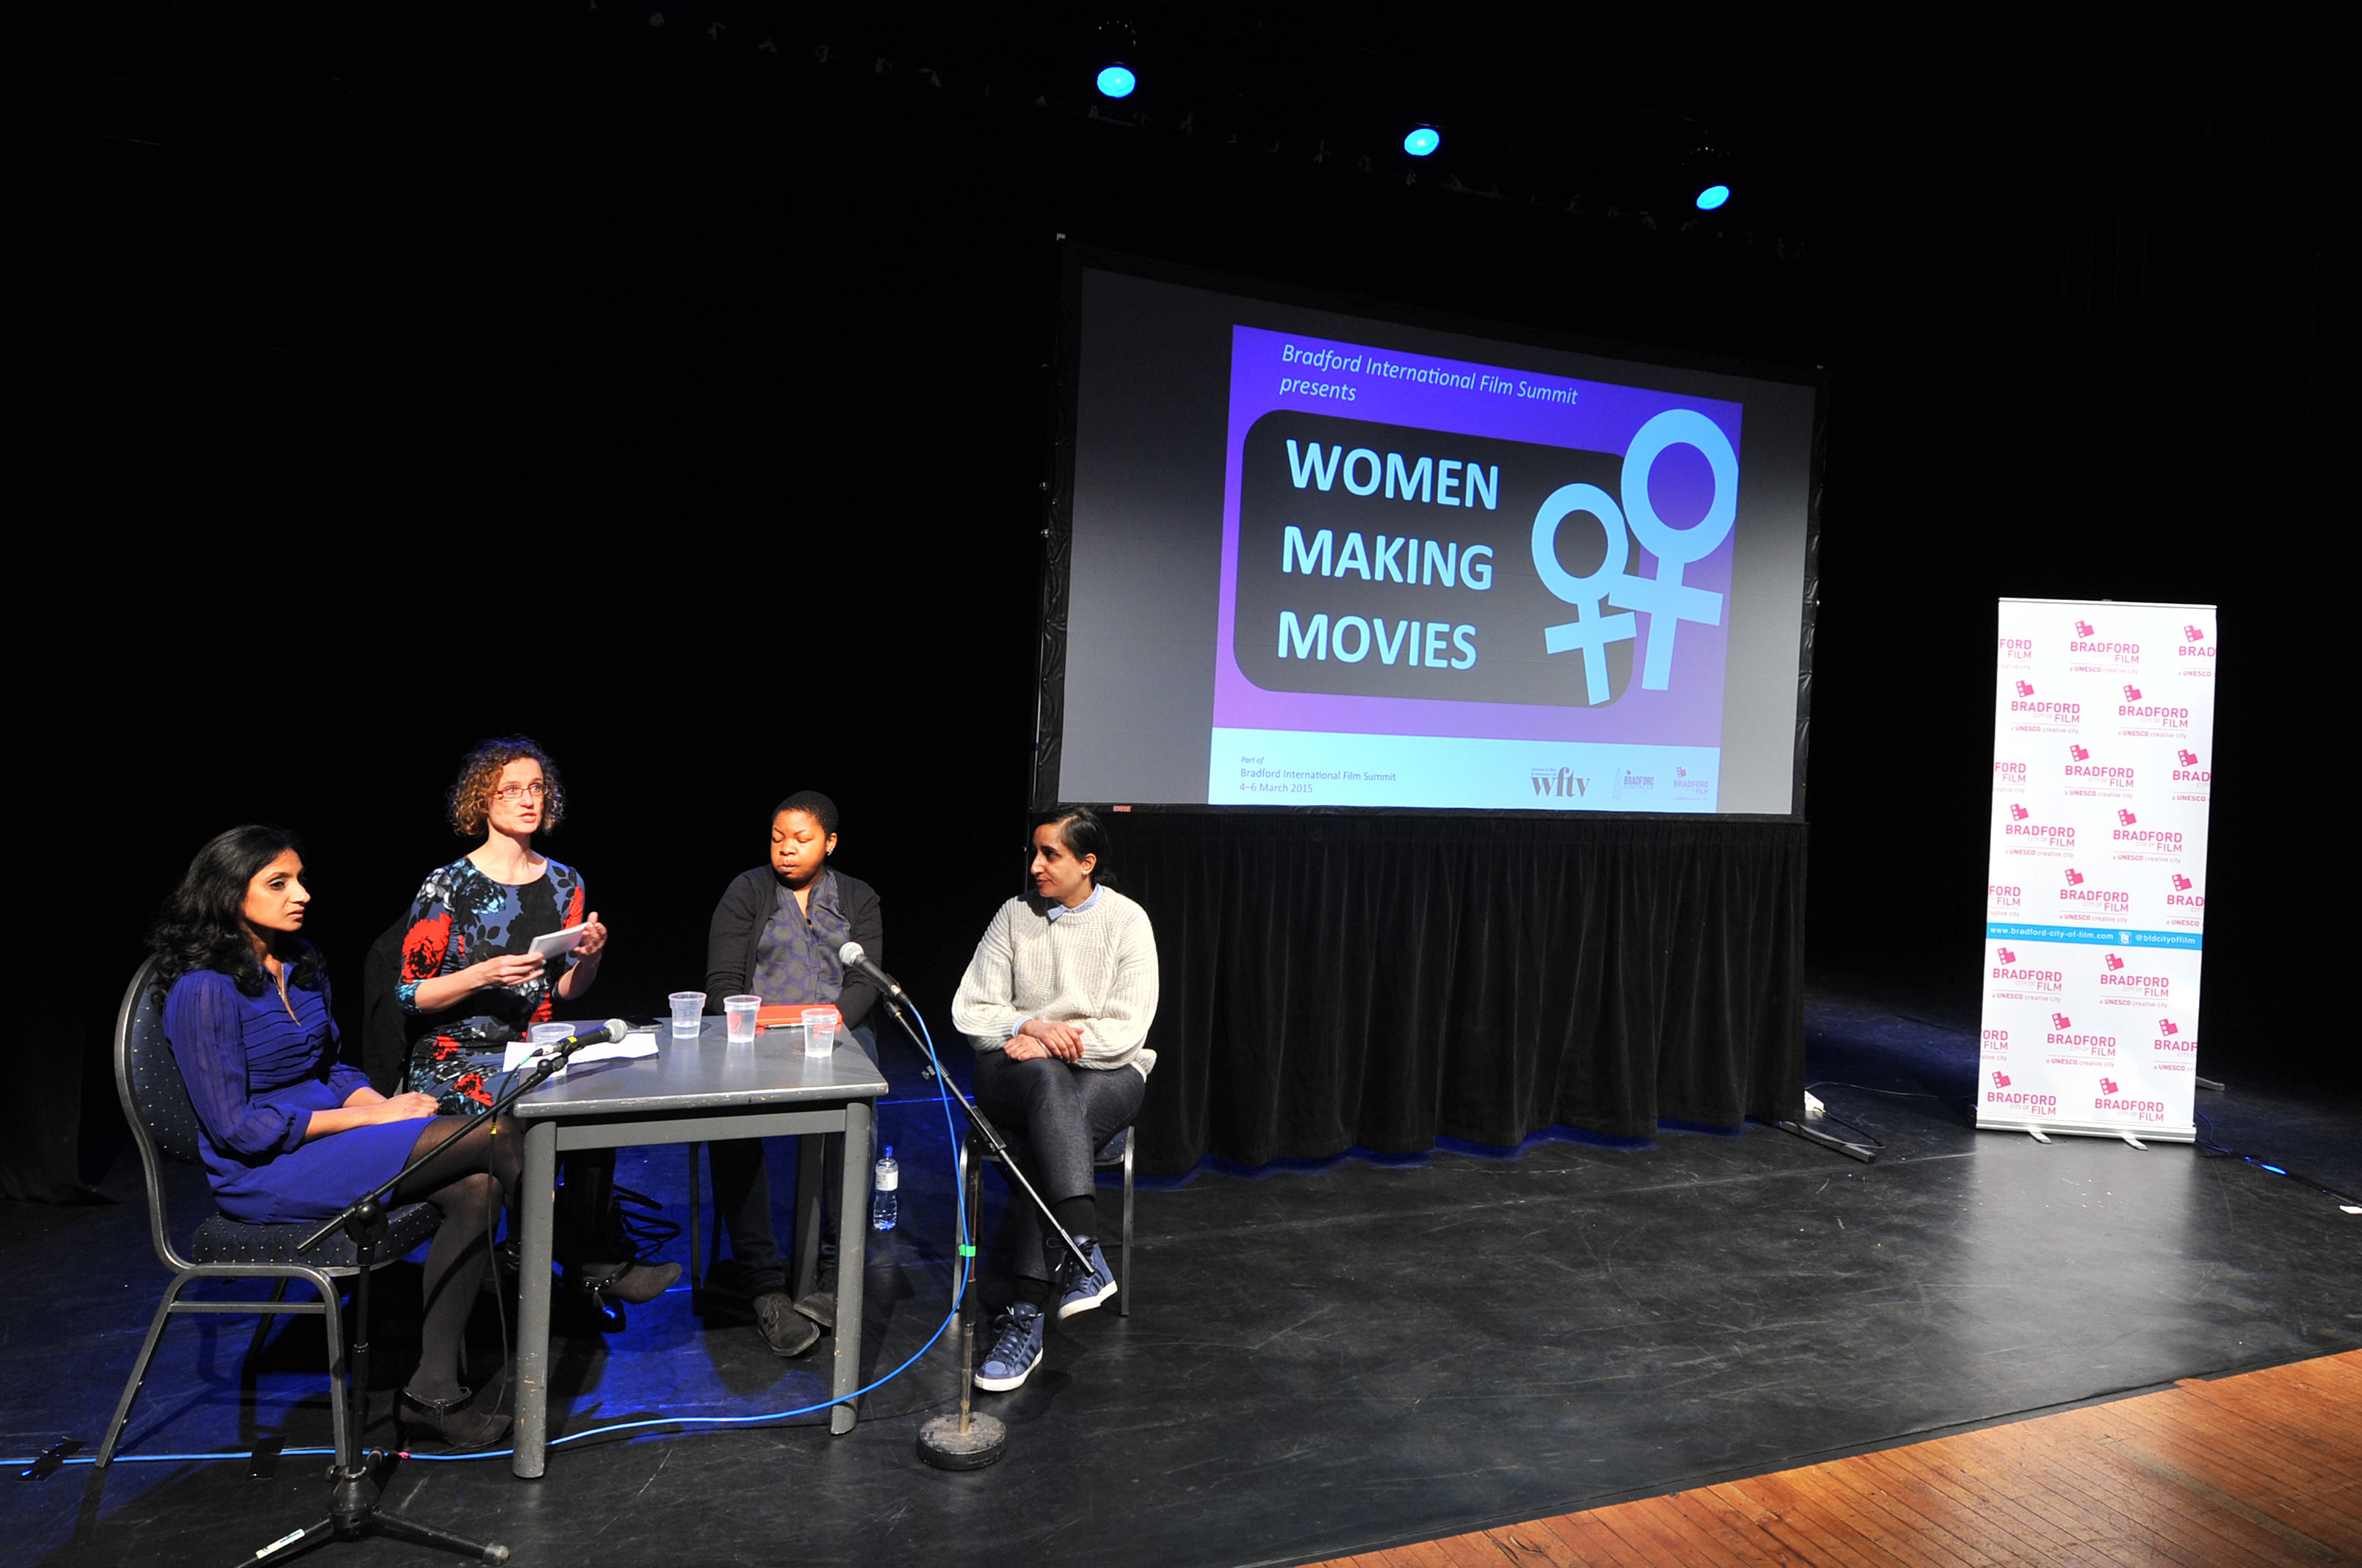 Bradford International Film Summit 2015Women Making Movies05.03.15